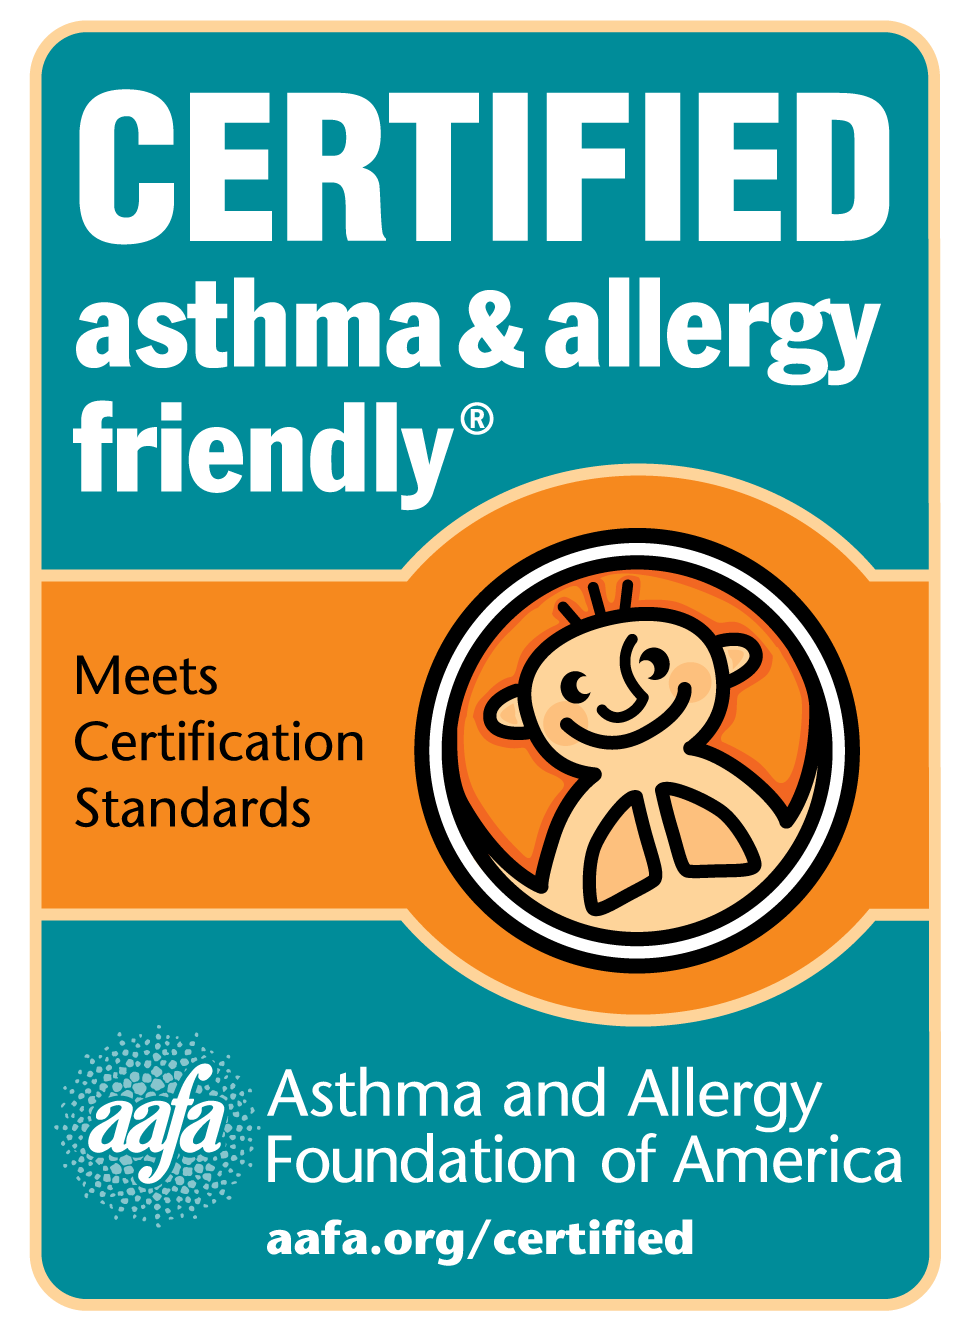 Certified Asthma & Allergy Friendly Logo